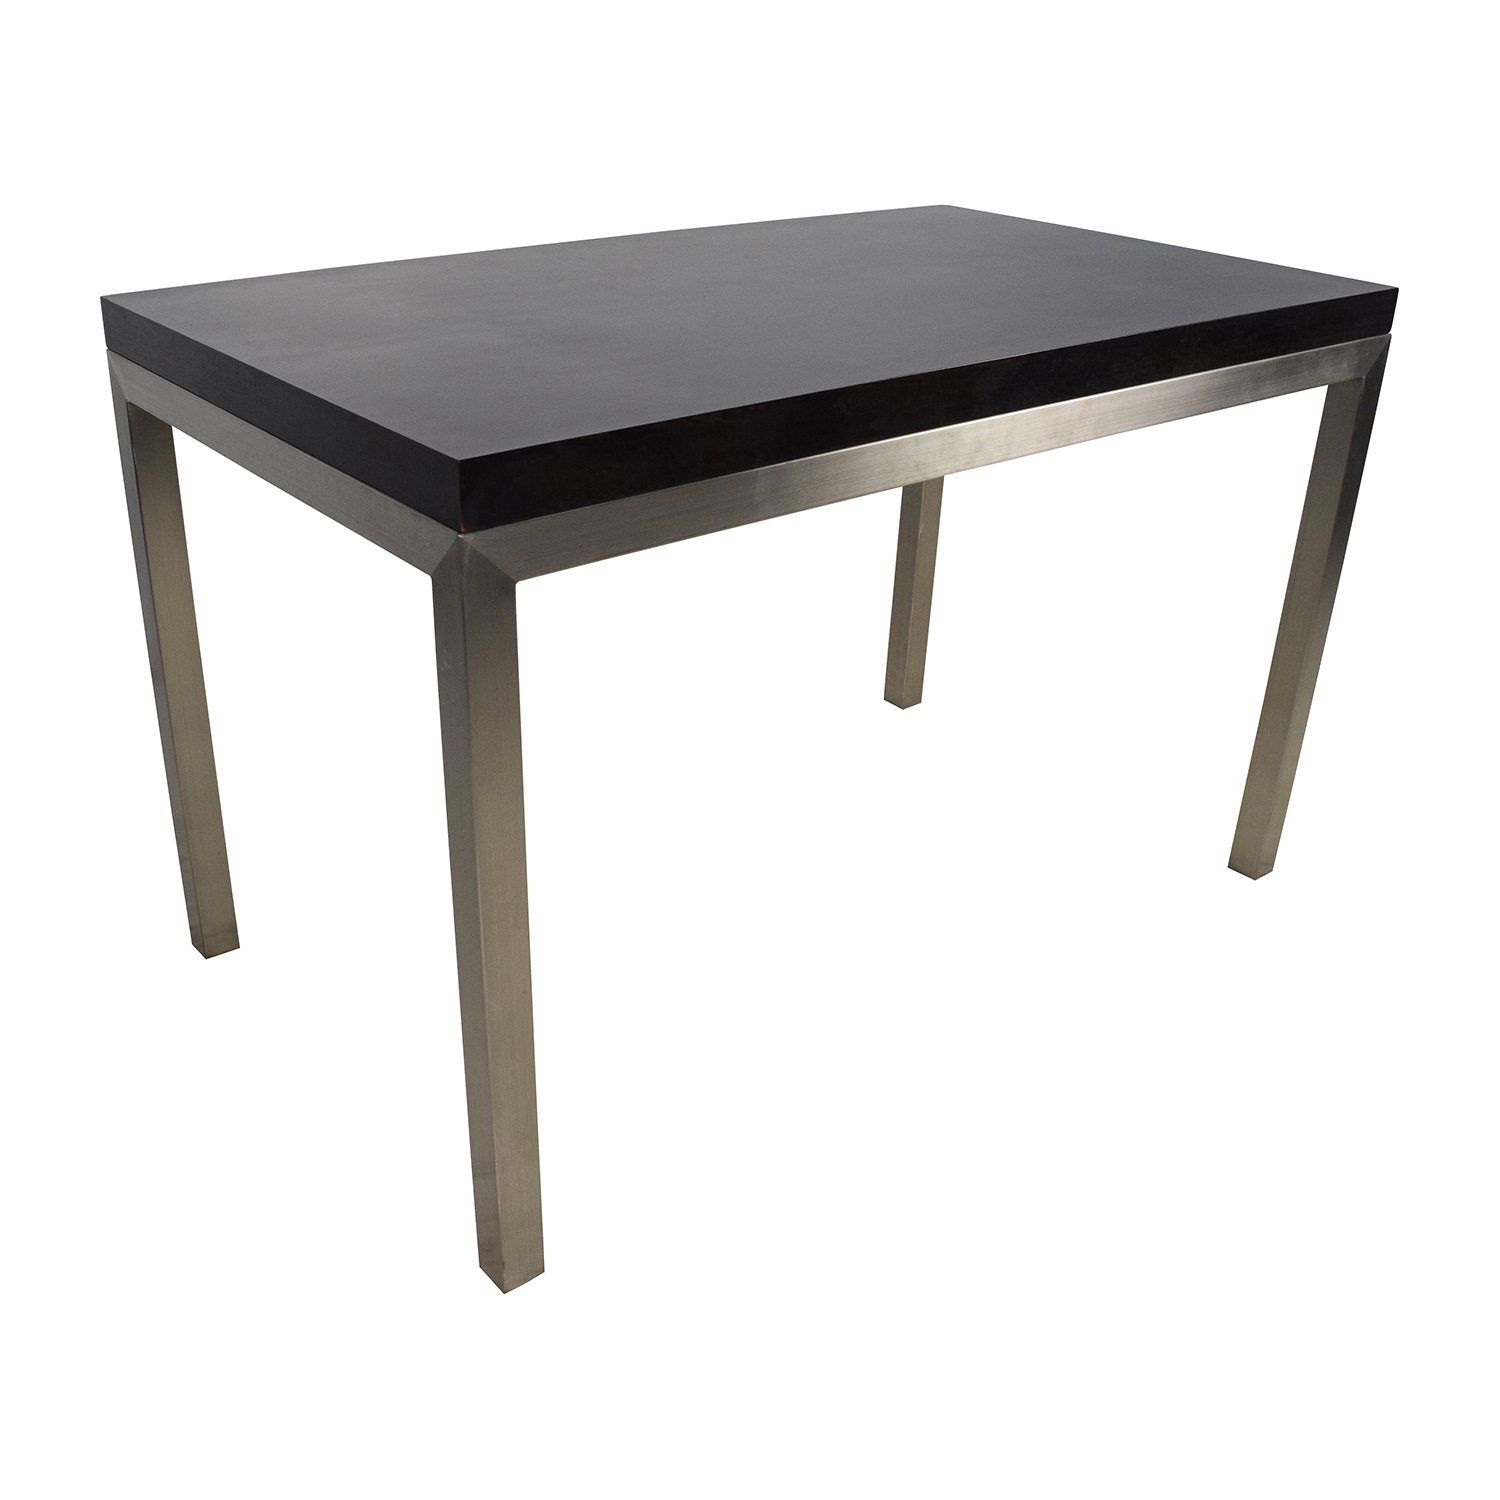 OFF Crate And Barrel Crate Barrel Parsons Dining Table Tables - Square parsons dining table